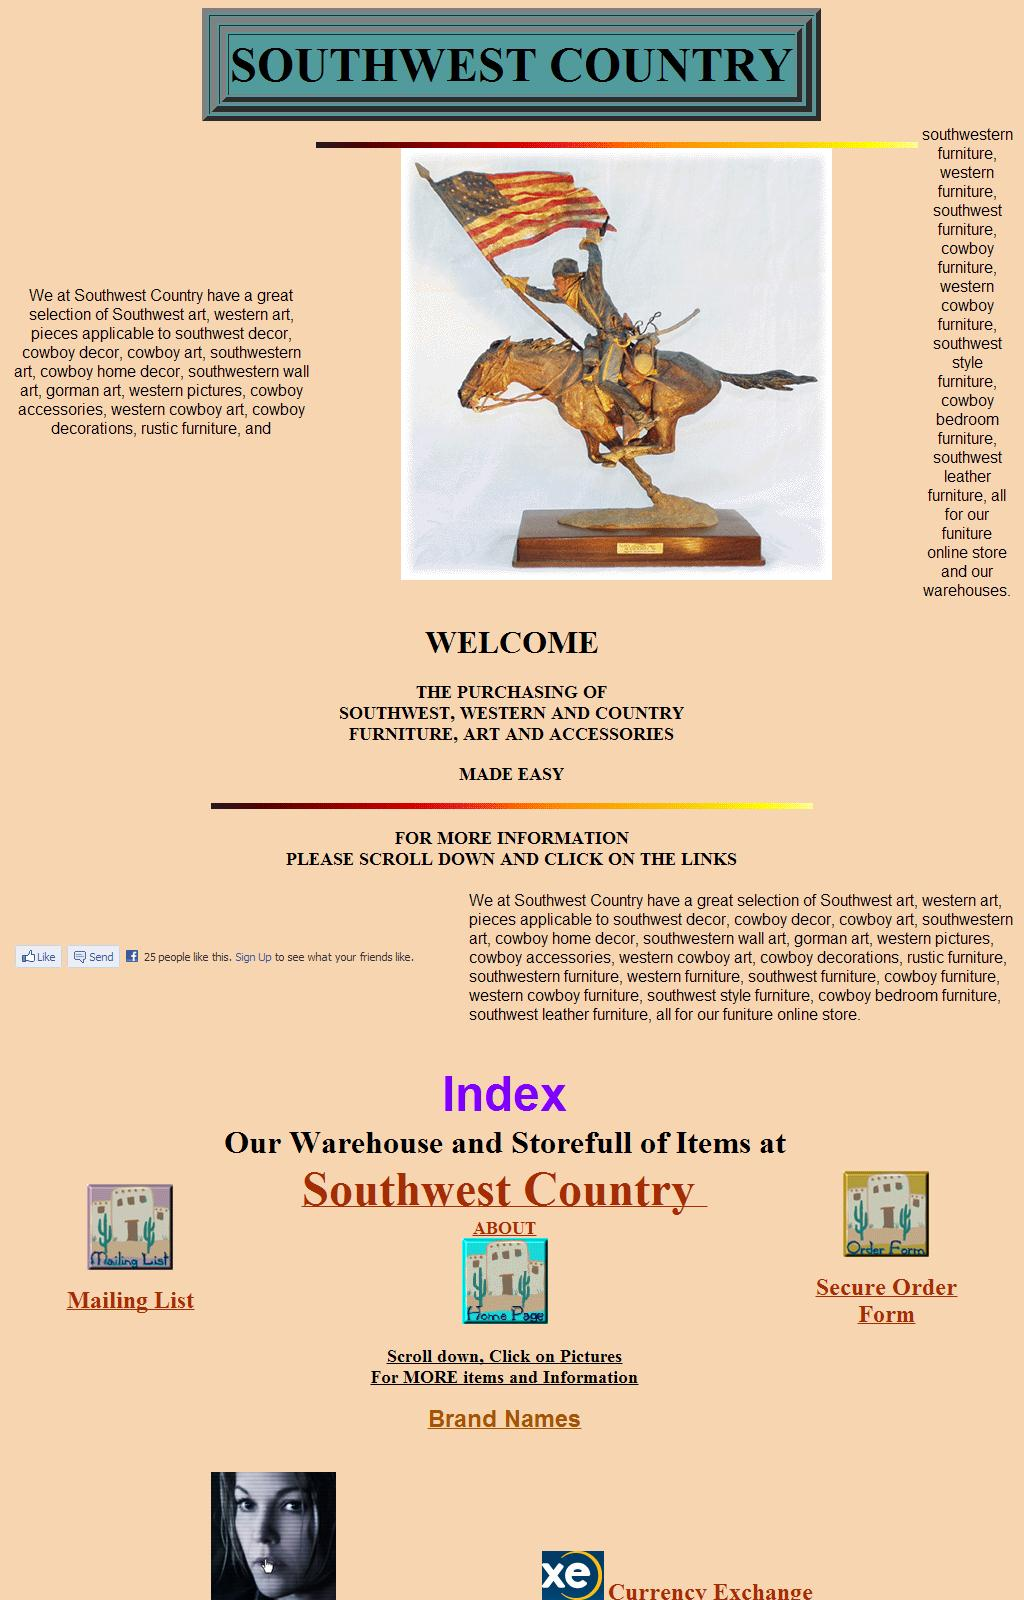 cowboy indian wall art furniture and western style beds and accessories